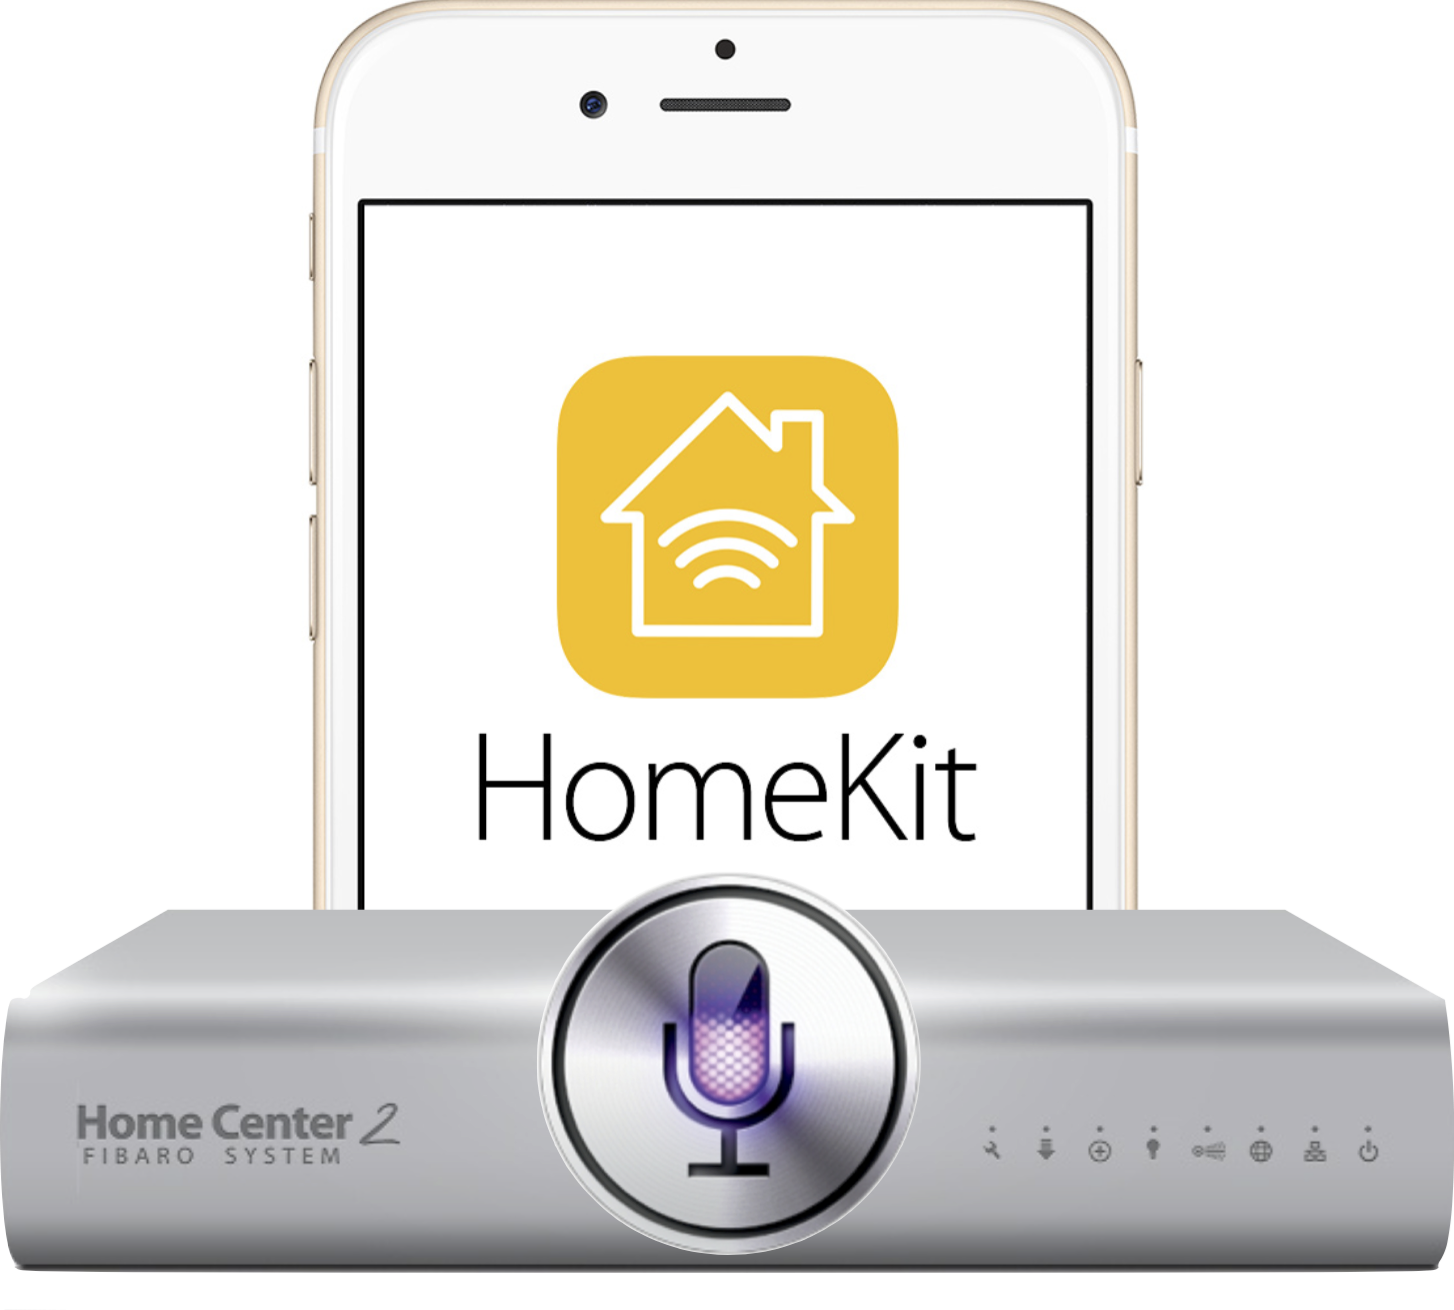 steuern sie ihr smarthome mit siri apples homekit und dem. Black Bedroom Furniture Sets. Home Design Ideas